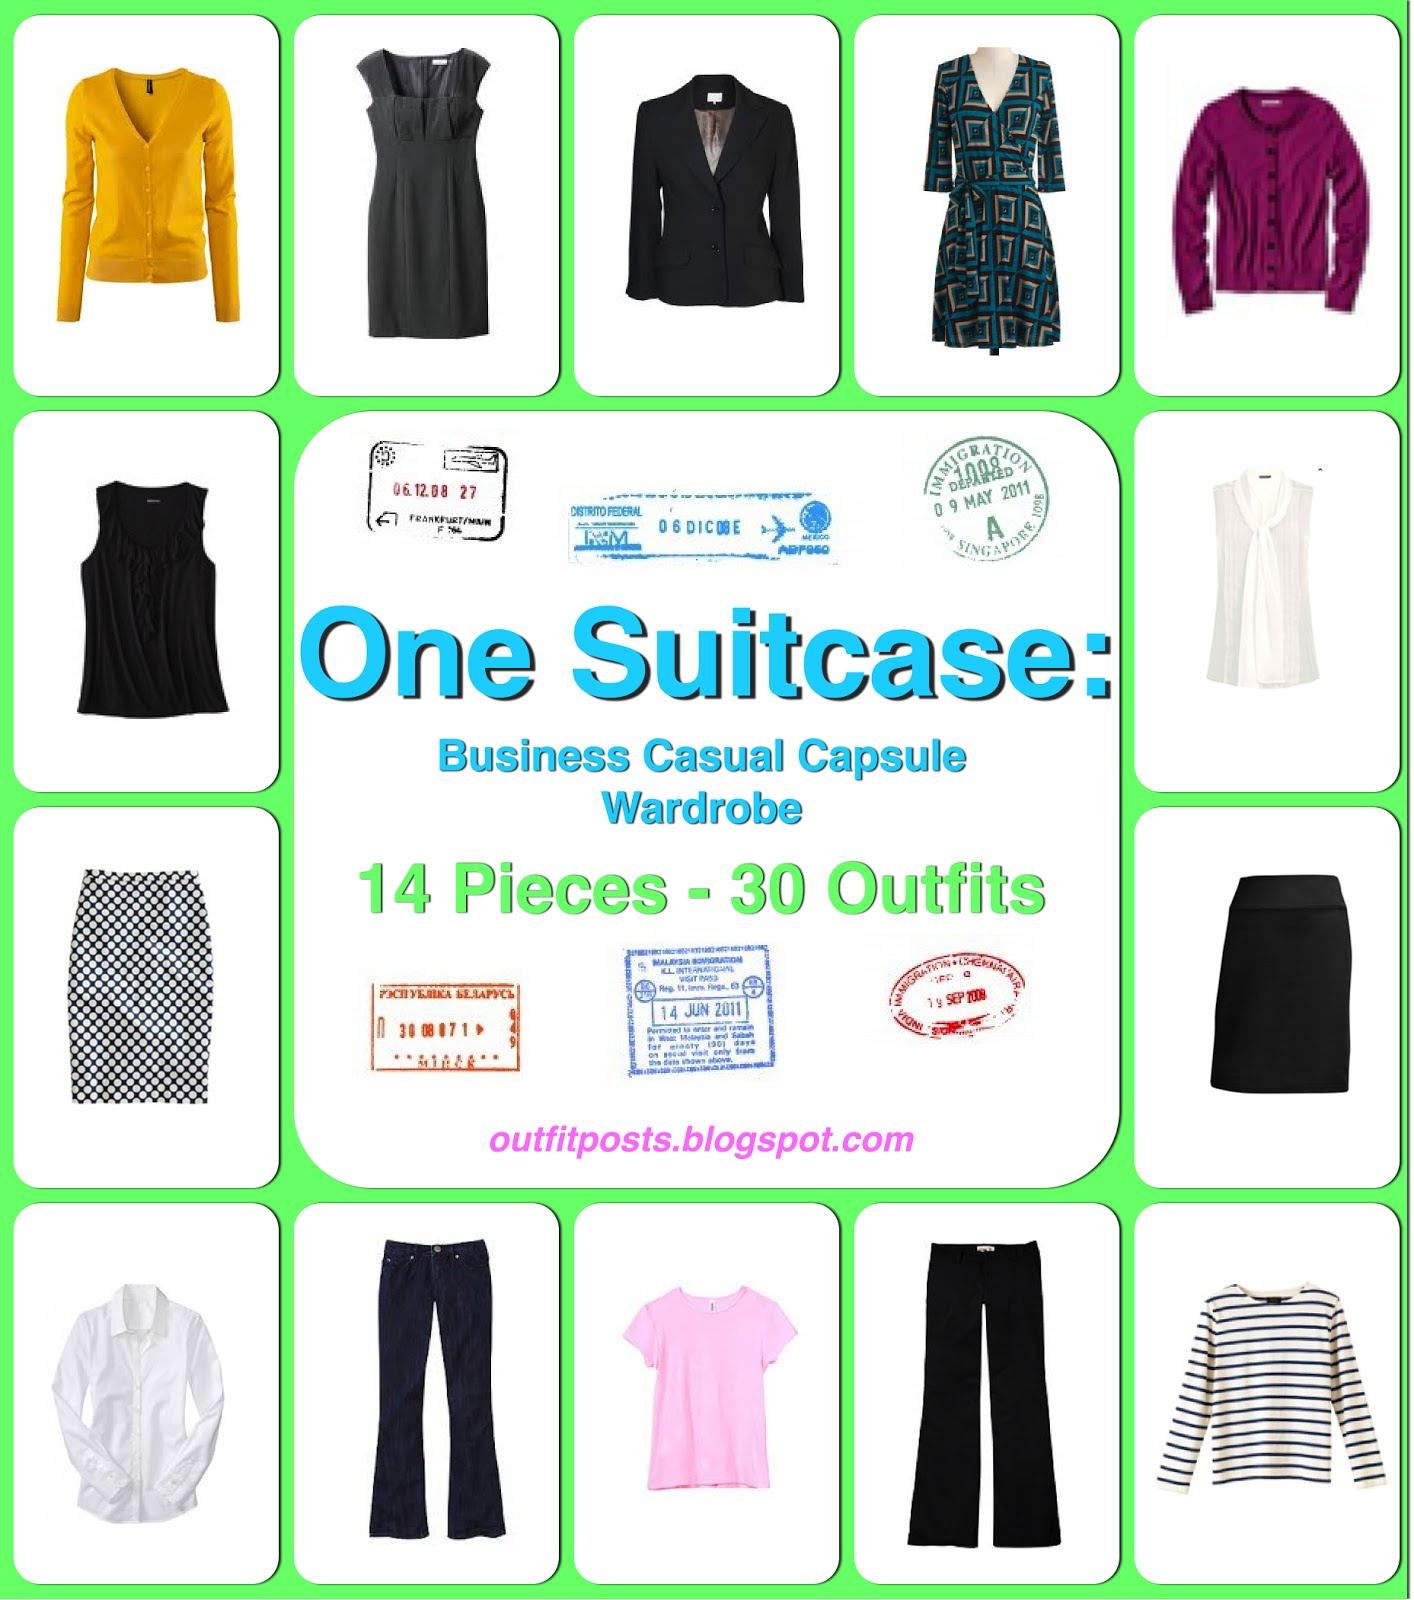 Without Further Ado Here Is The First Installment Of Outfit Posts One Suitcase Series Business Casual Capsule Wardrobe